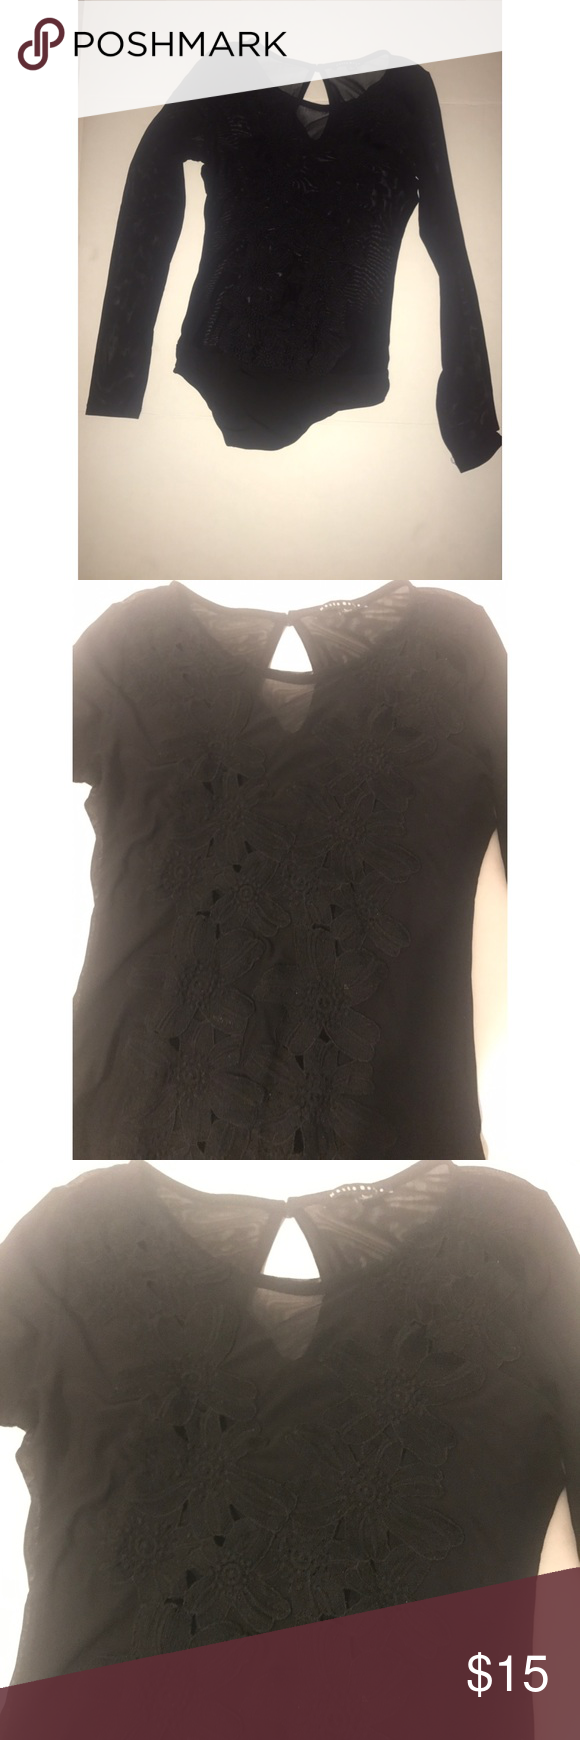 66fbec68e9 Haute Monde Black Body Suit L Size L See through material with floral  embroidering Haute Monde Intimates   Sleepwear Shapewear